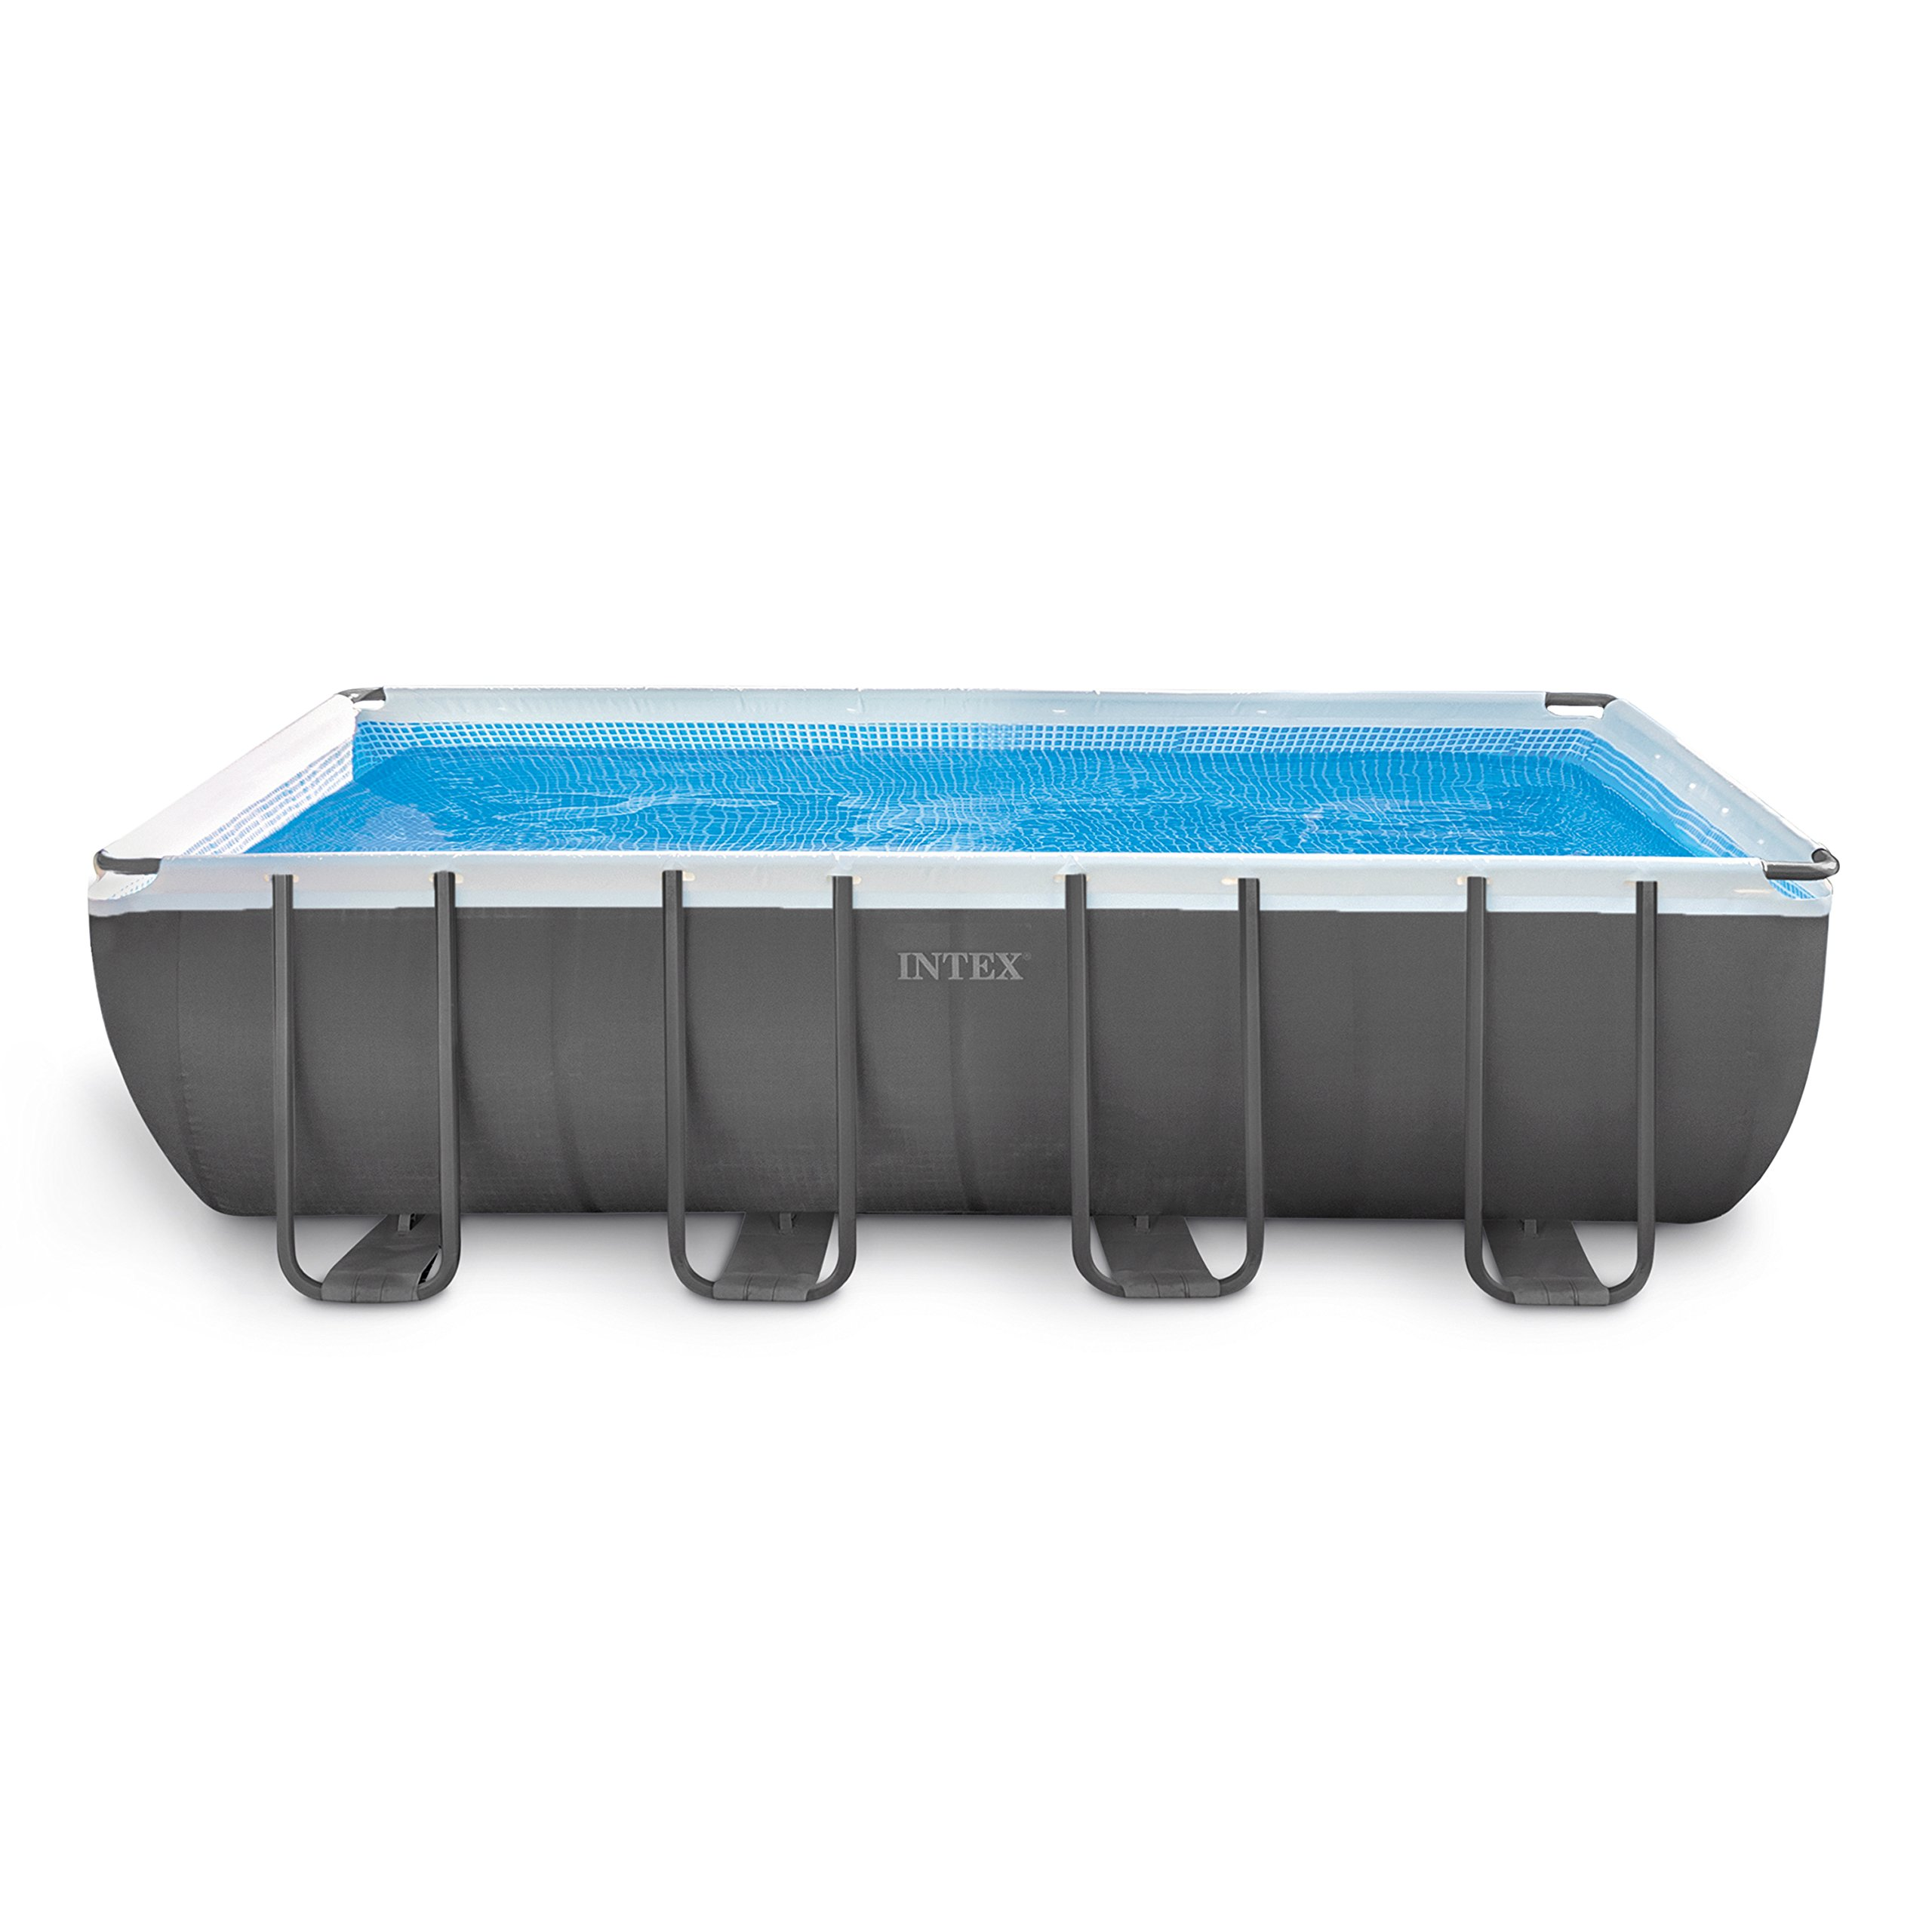 a2895e38bde3 Amazon.com : Intex 18ft X 9ft X 52in Ultra Frame Rectangular Pool Set with  Sand Filter Pump, Ladder, Ground Cloth & Pool Cover : Garden & Outdoor